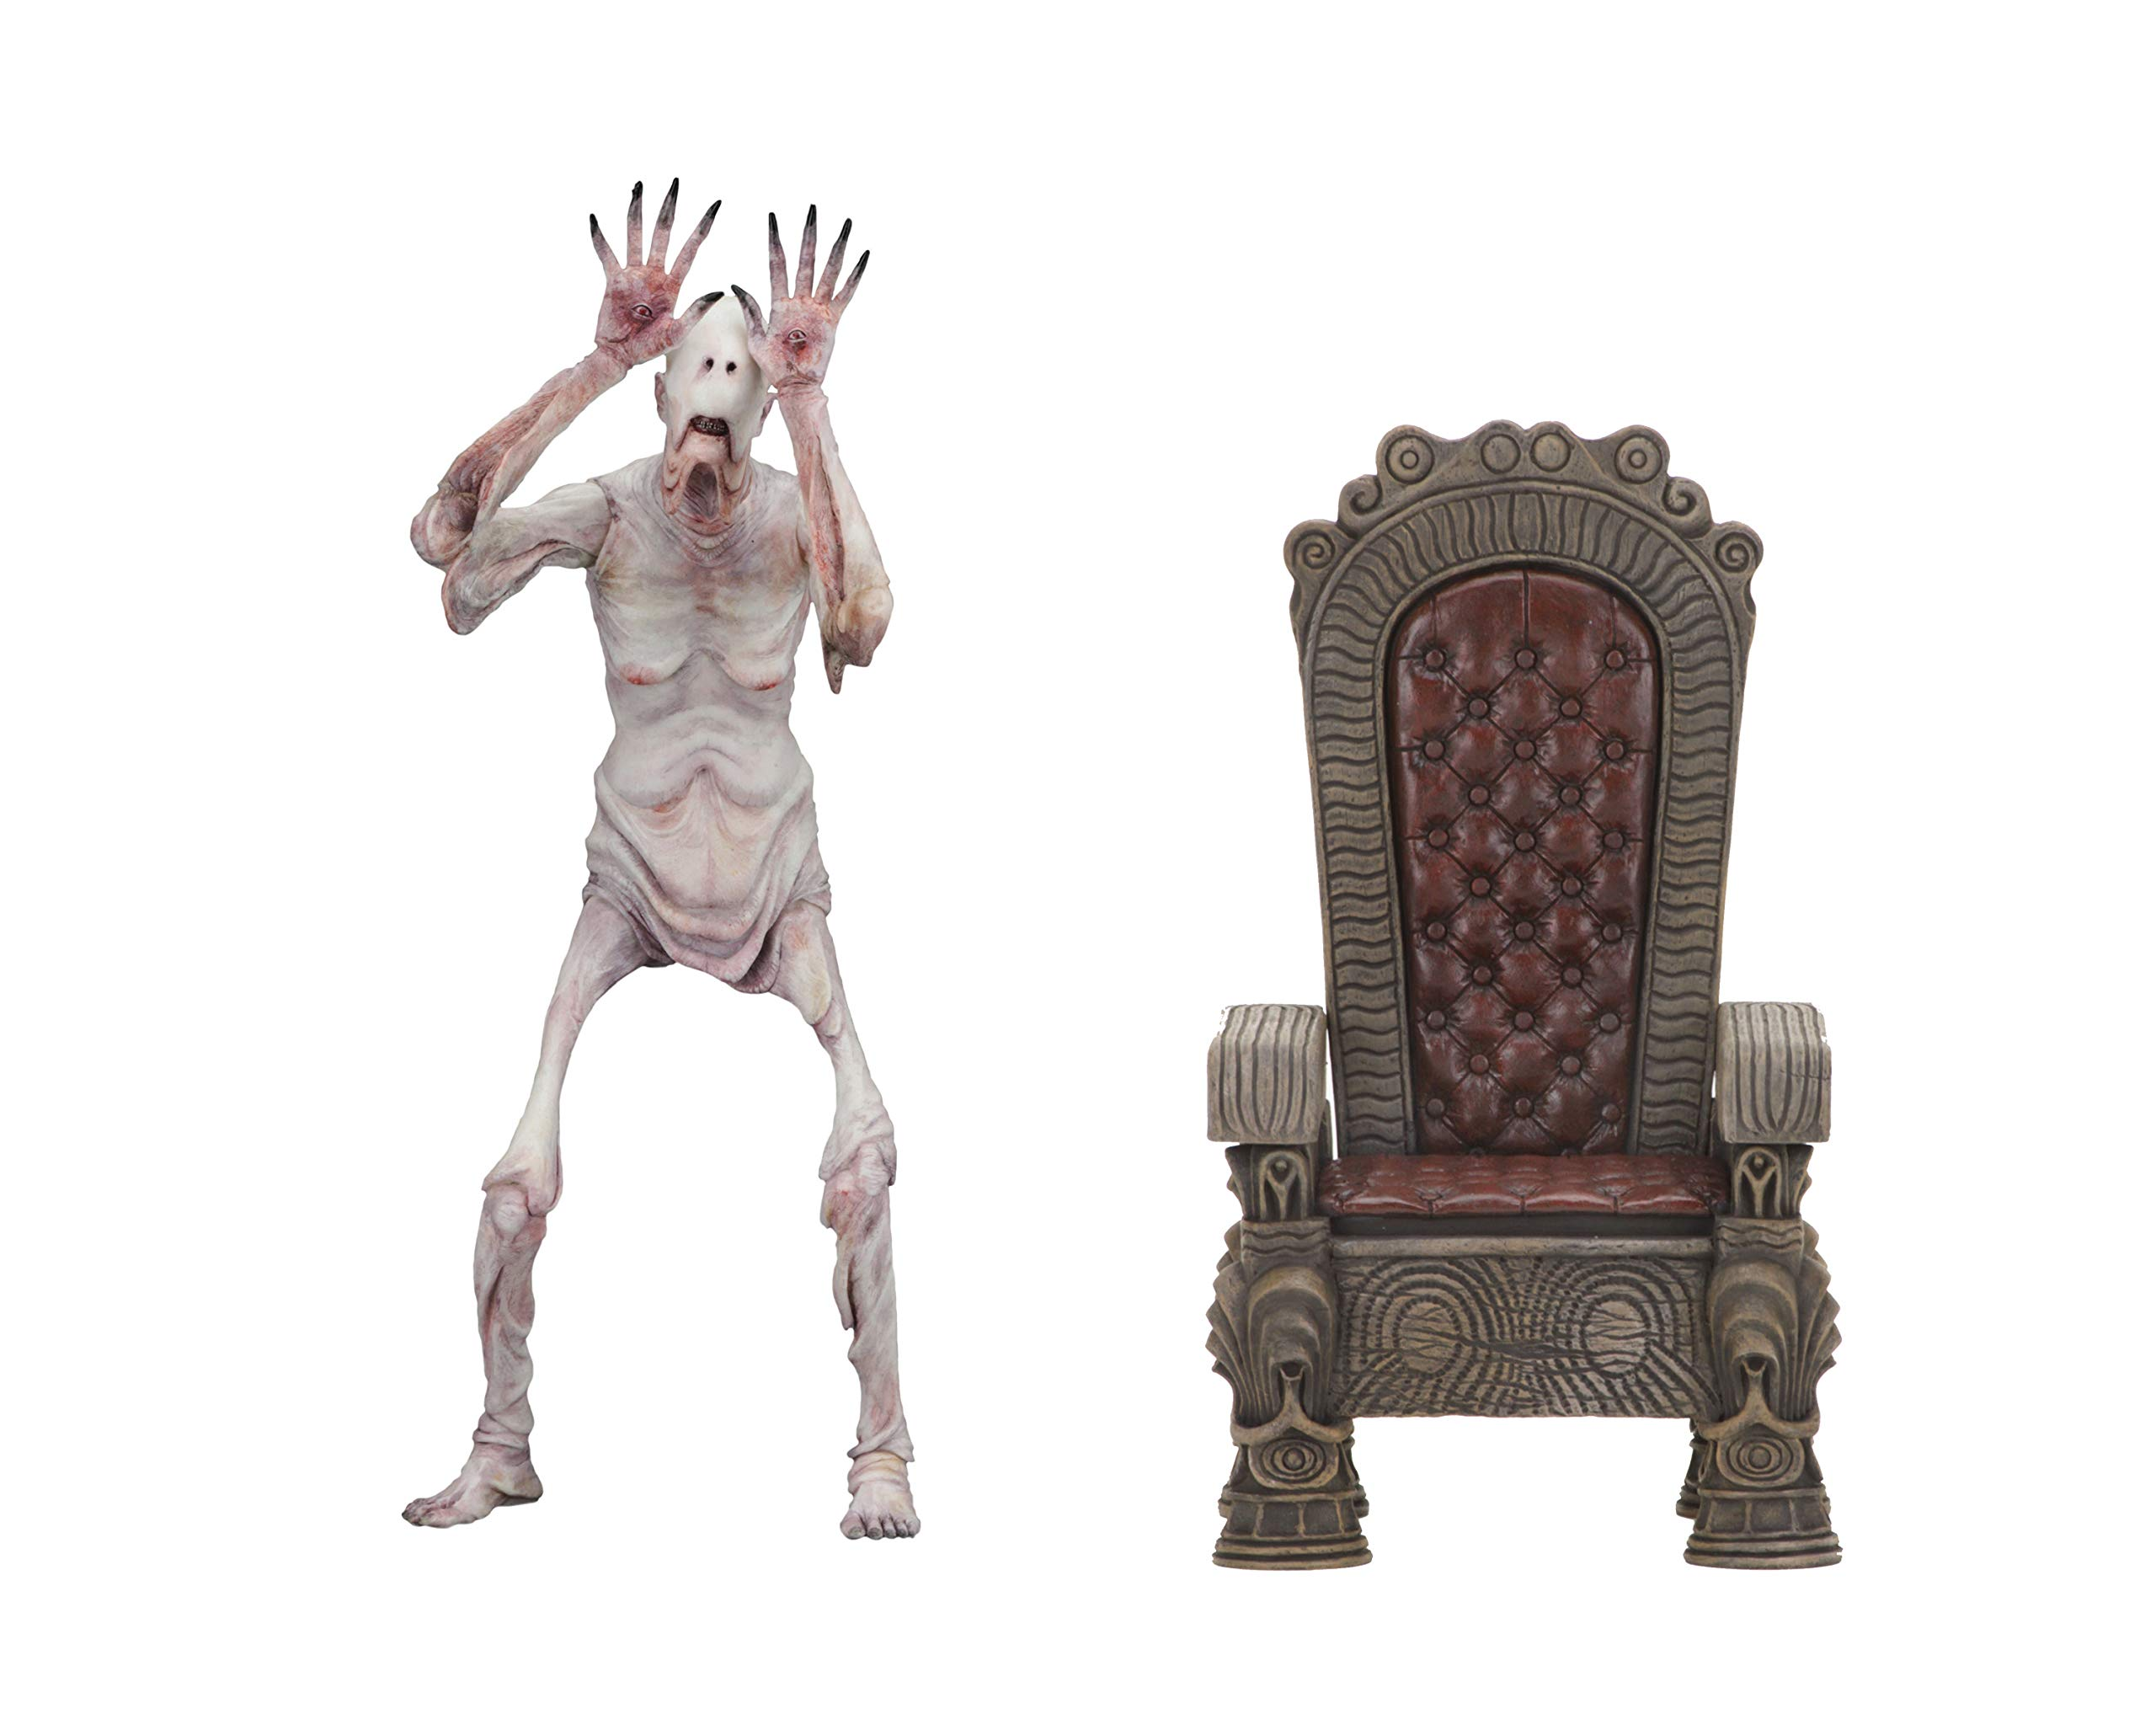 NECA - Guillermo Del Toro Signature Collection - 7'' Scale Action Figure - Pale Man (Pan's Labyrinth)